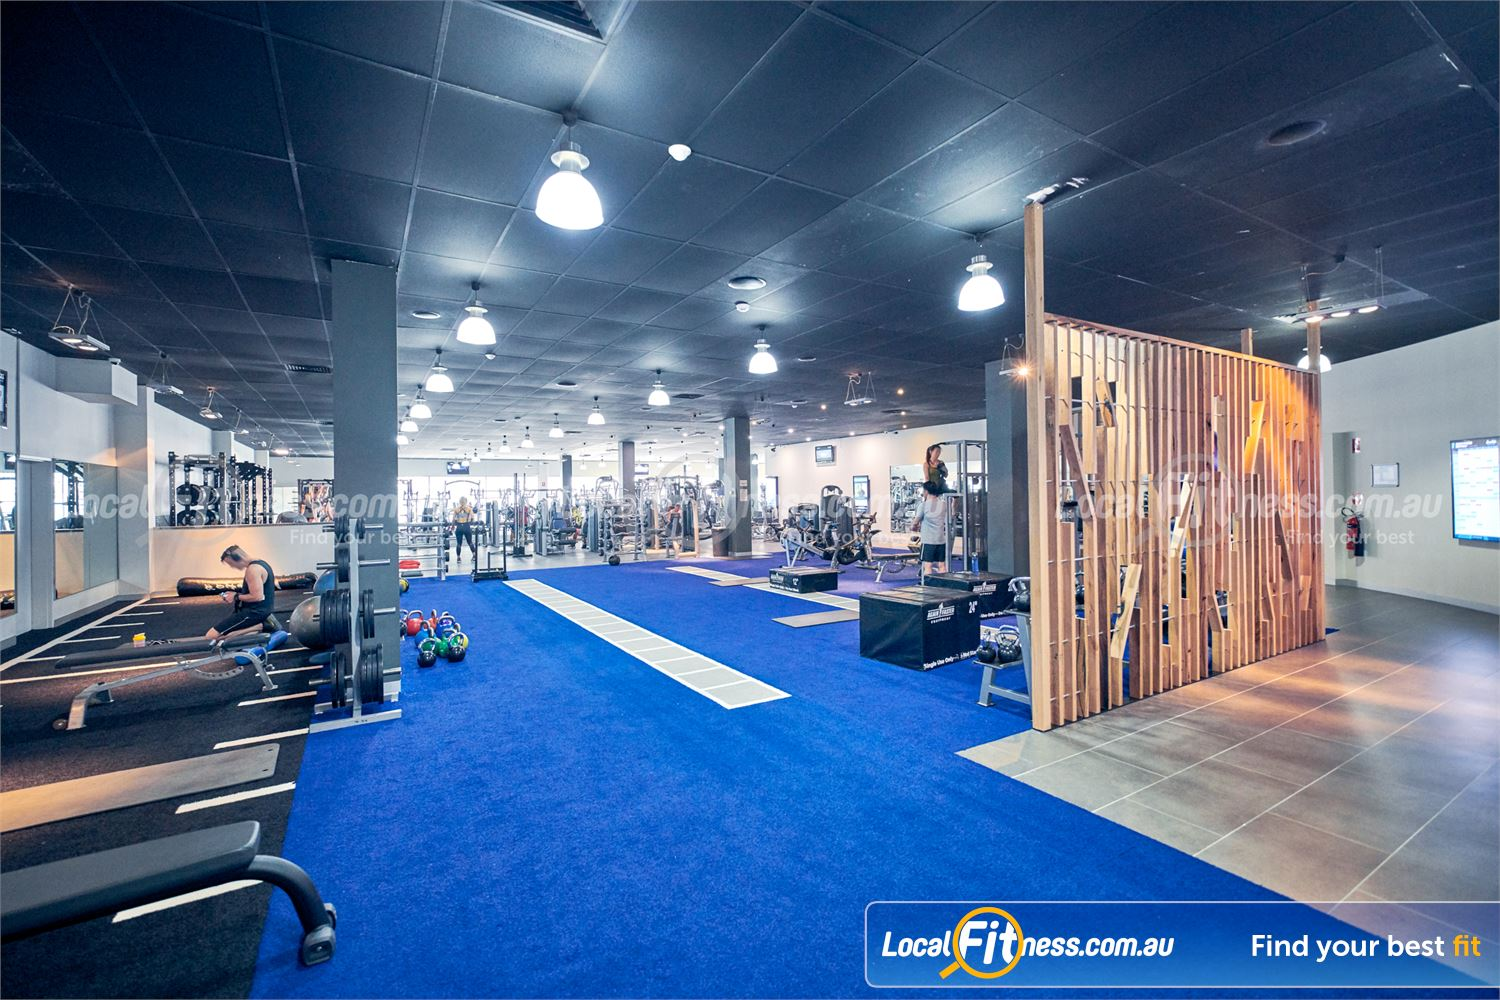 Goodlife Health Clubs Knox City Near Knoxfield Enjoy 24 hour Wantirna South gym access to our equipment.